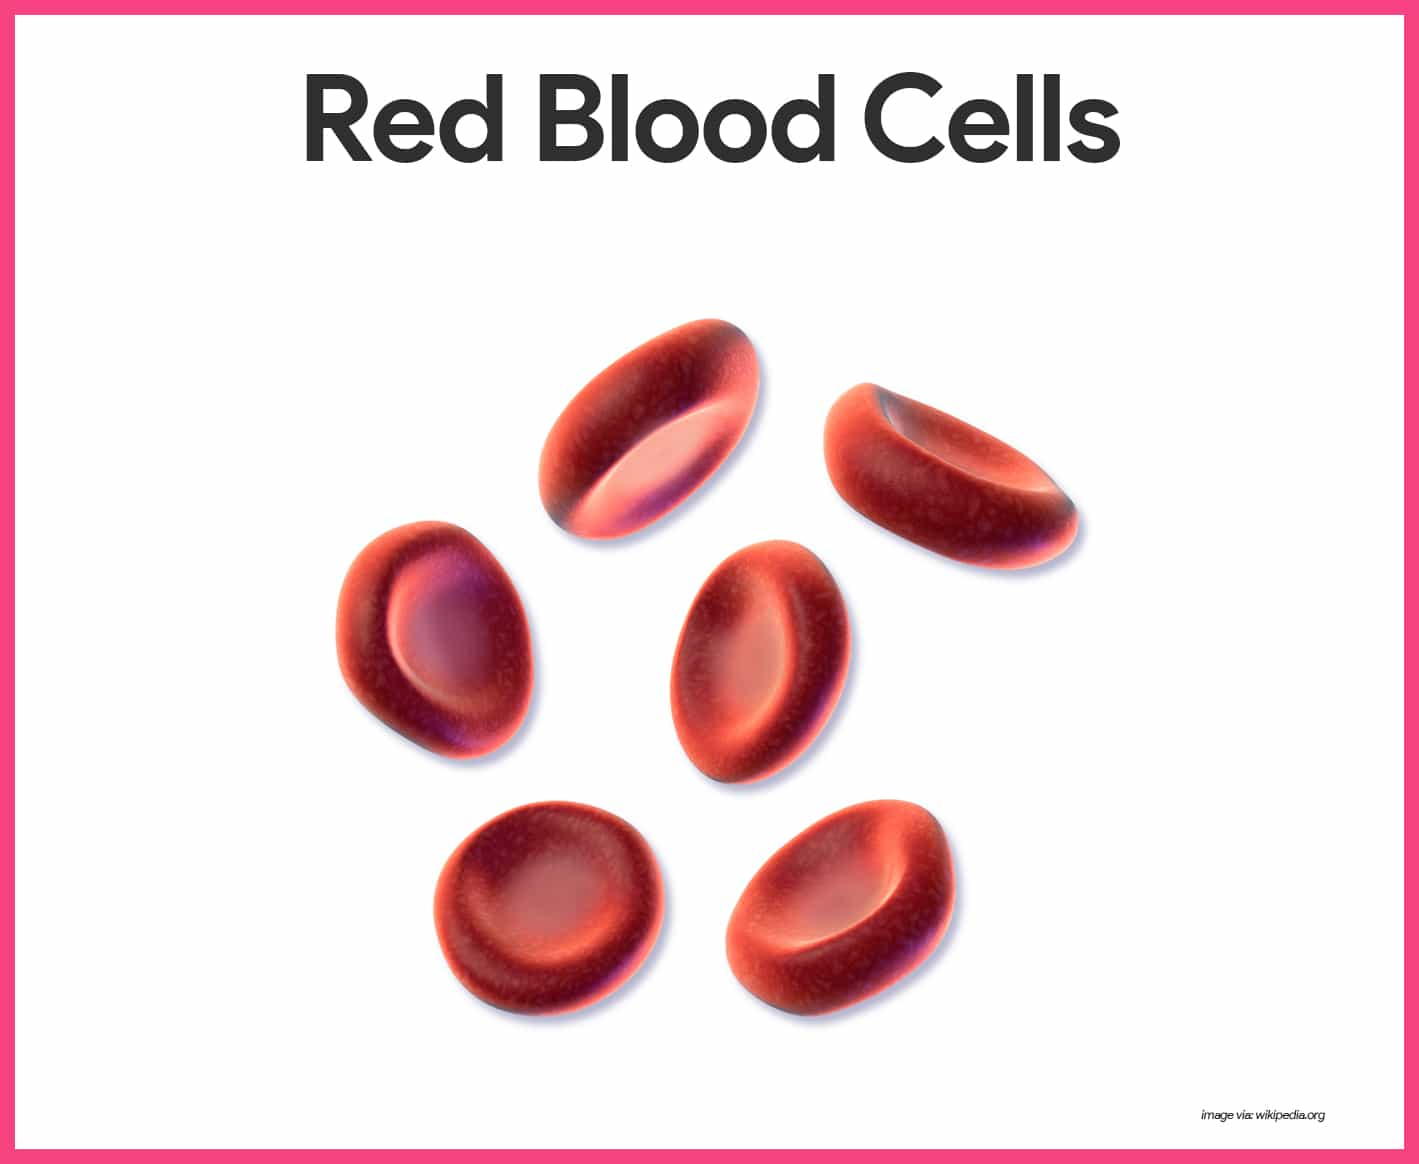 Blood Anatomy And Physiology Study Guide For Nurses Human White Cell Diagram Cells Overview Stock Rbcs Differ From Other Because They Are Anucleate That Is Lack A Nucleus Also Contain Very Few Organelles